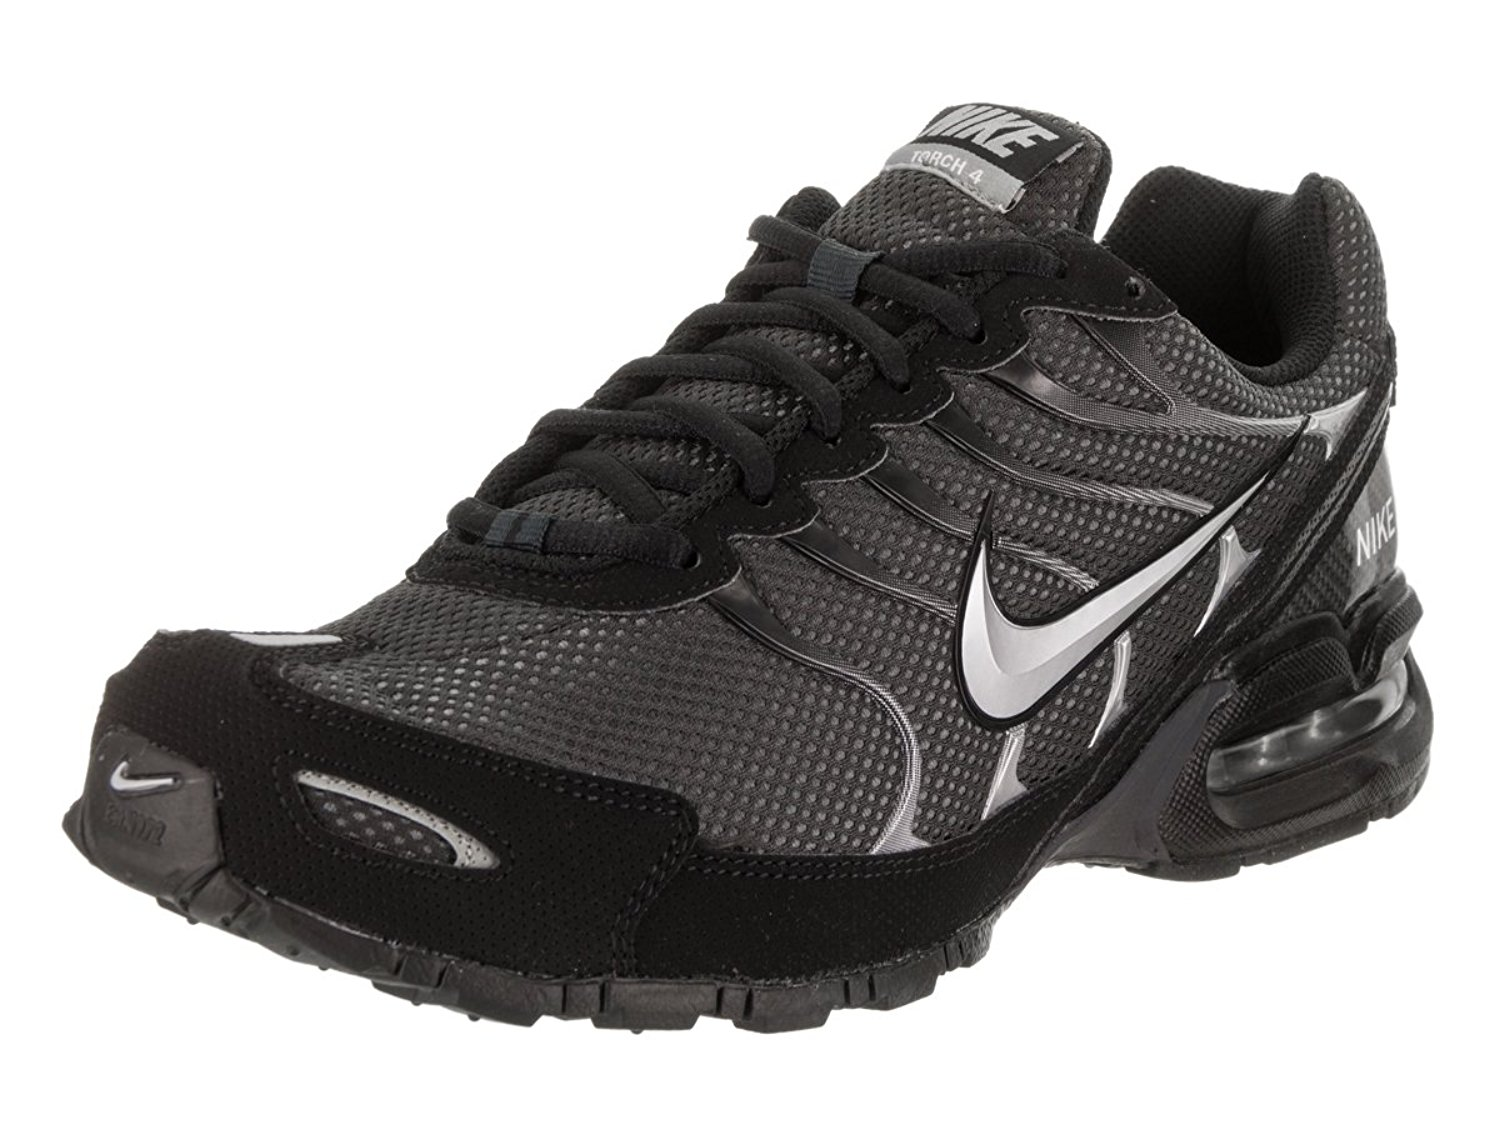 Nike Air Max Torch 4 Reviewed & Tested for Performance in